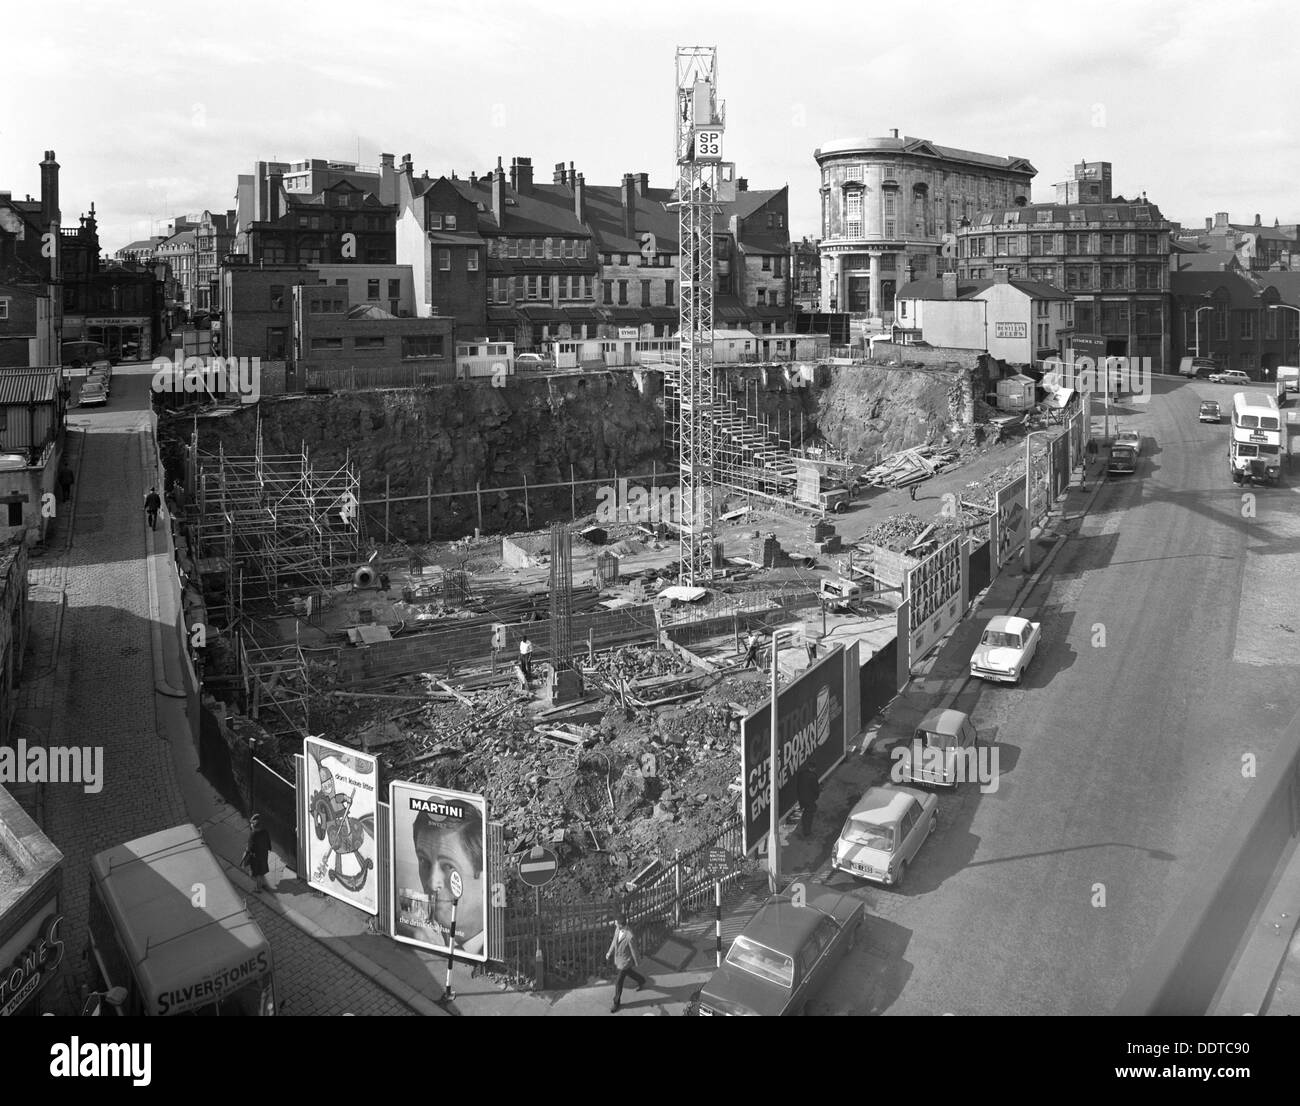 Commercial development on Campo Lane, Sheffield, South Yorkshire, 1967.  Artist: Michael Walters Stock Photo